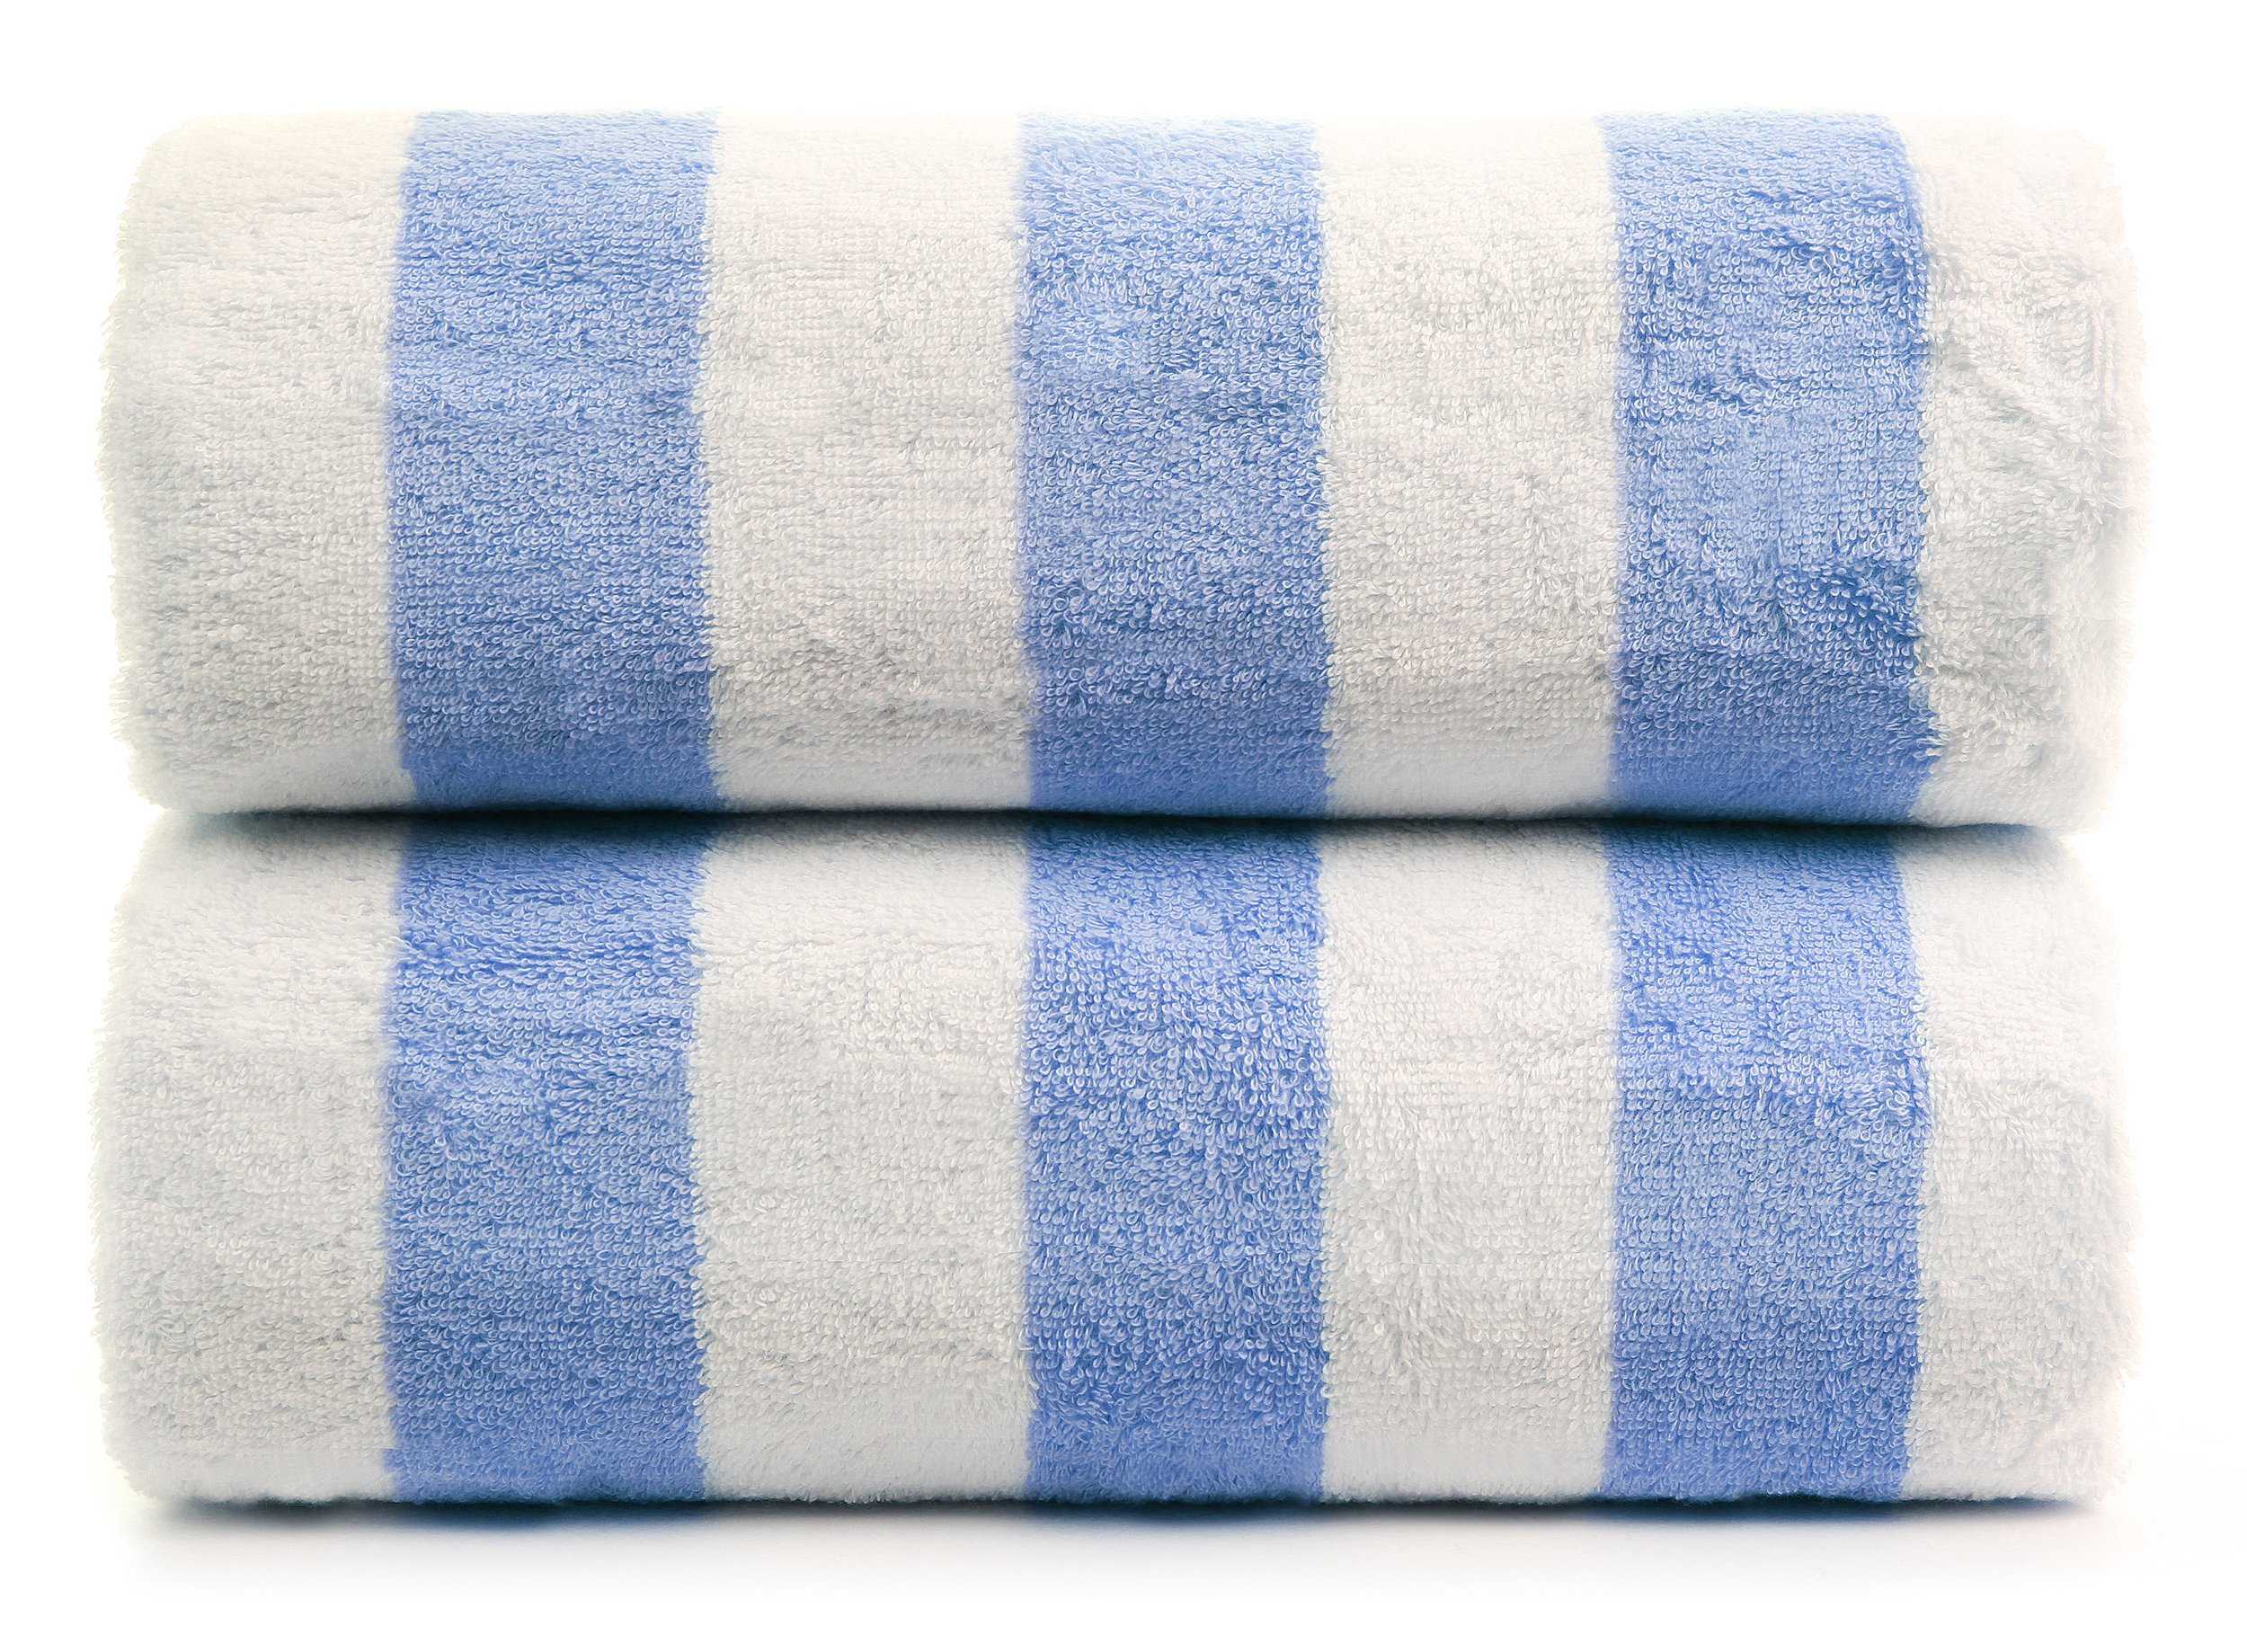 Premium Quality Large Hotel and Spa 2-Piece Beach Towels, Pool Towels with Cabana Stripe, Eco-Friendly, Turkish Cotton (Blue, 30x60 inches)